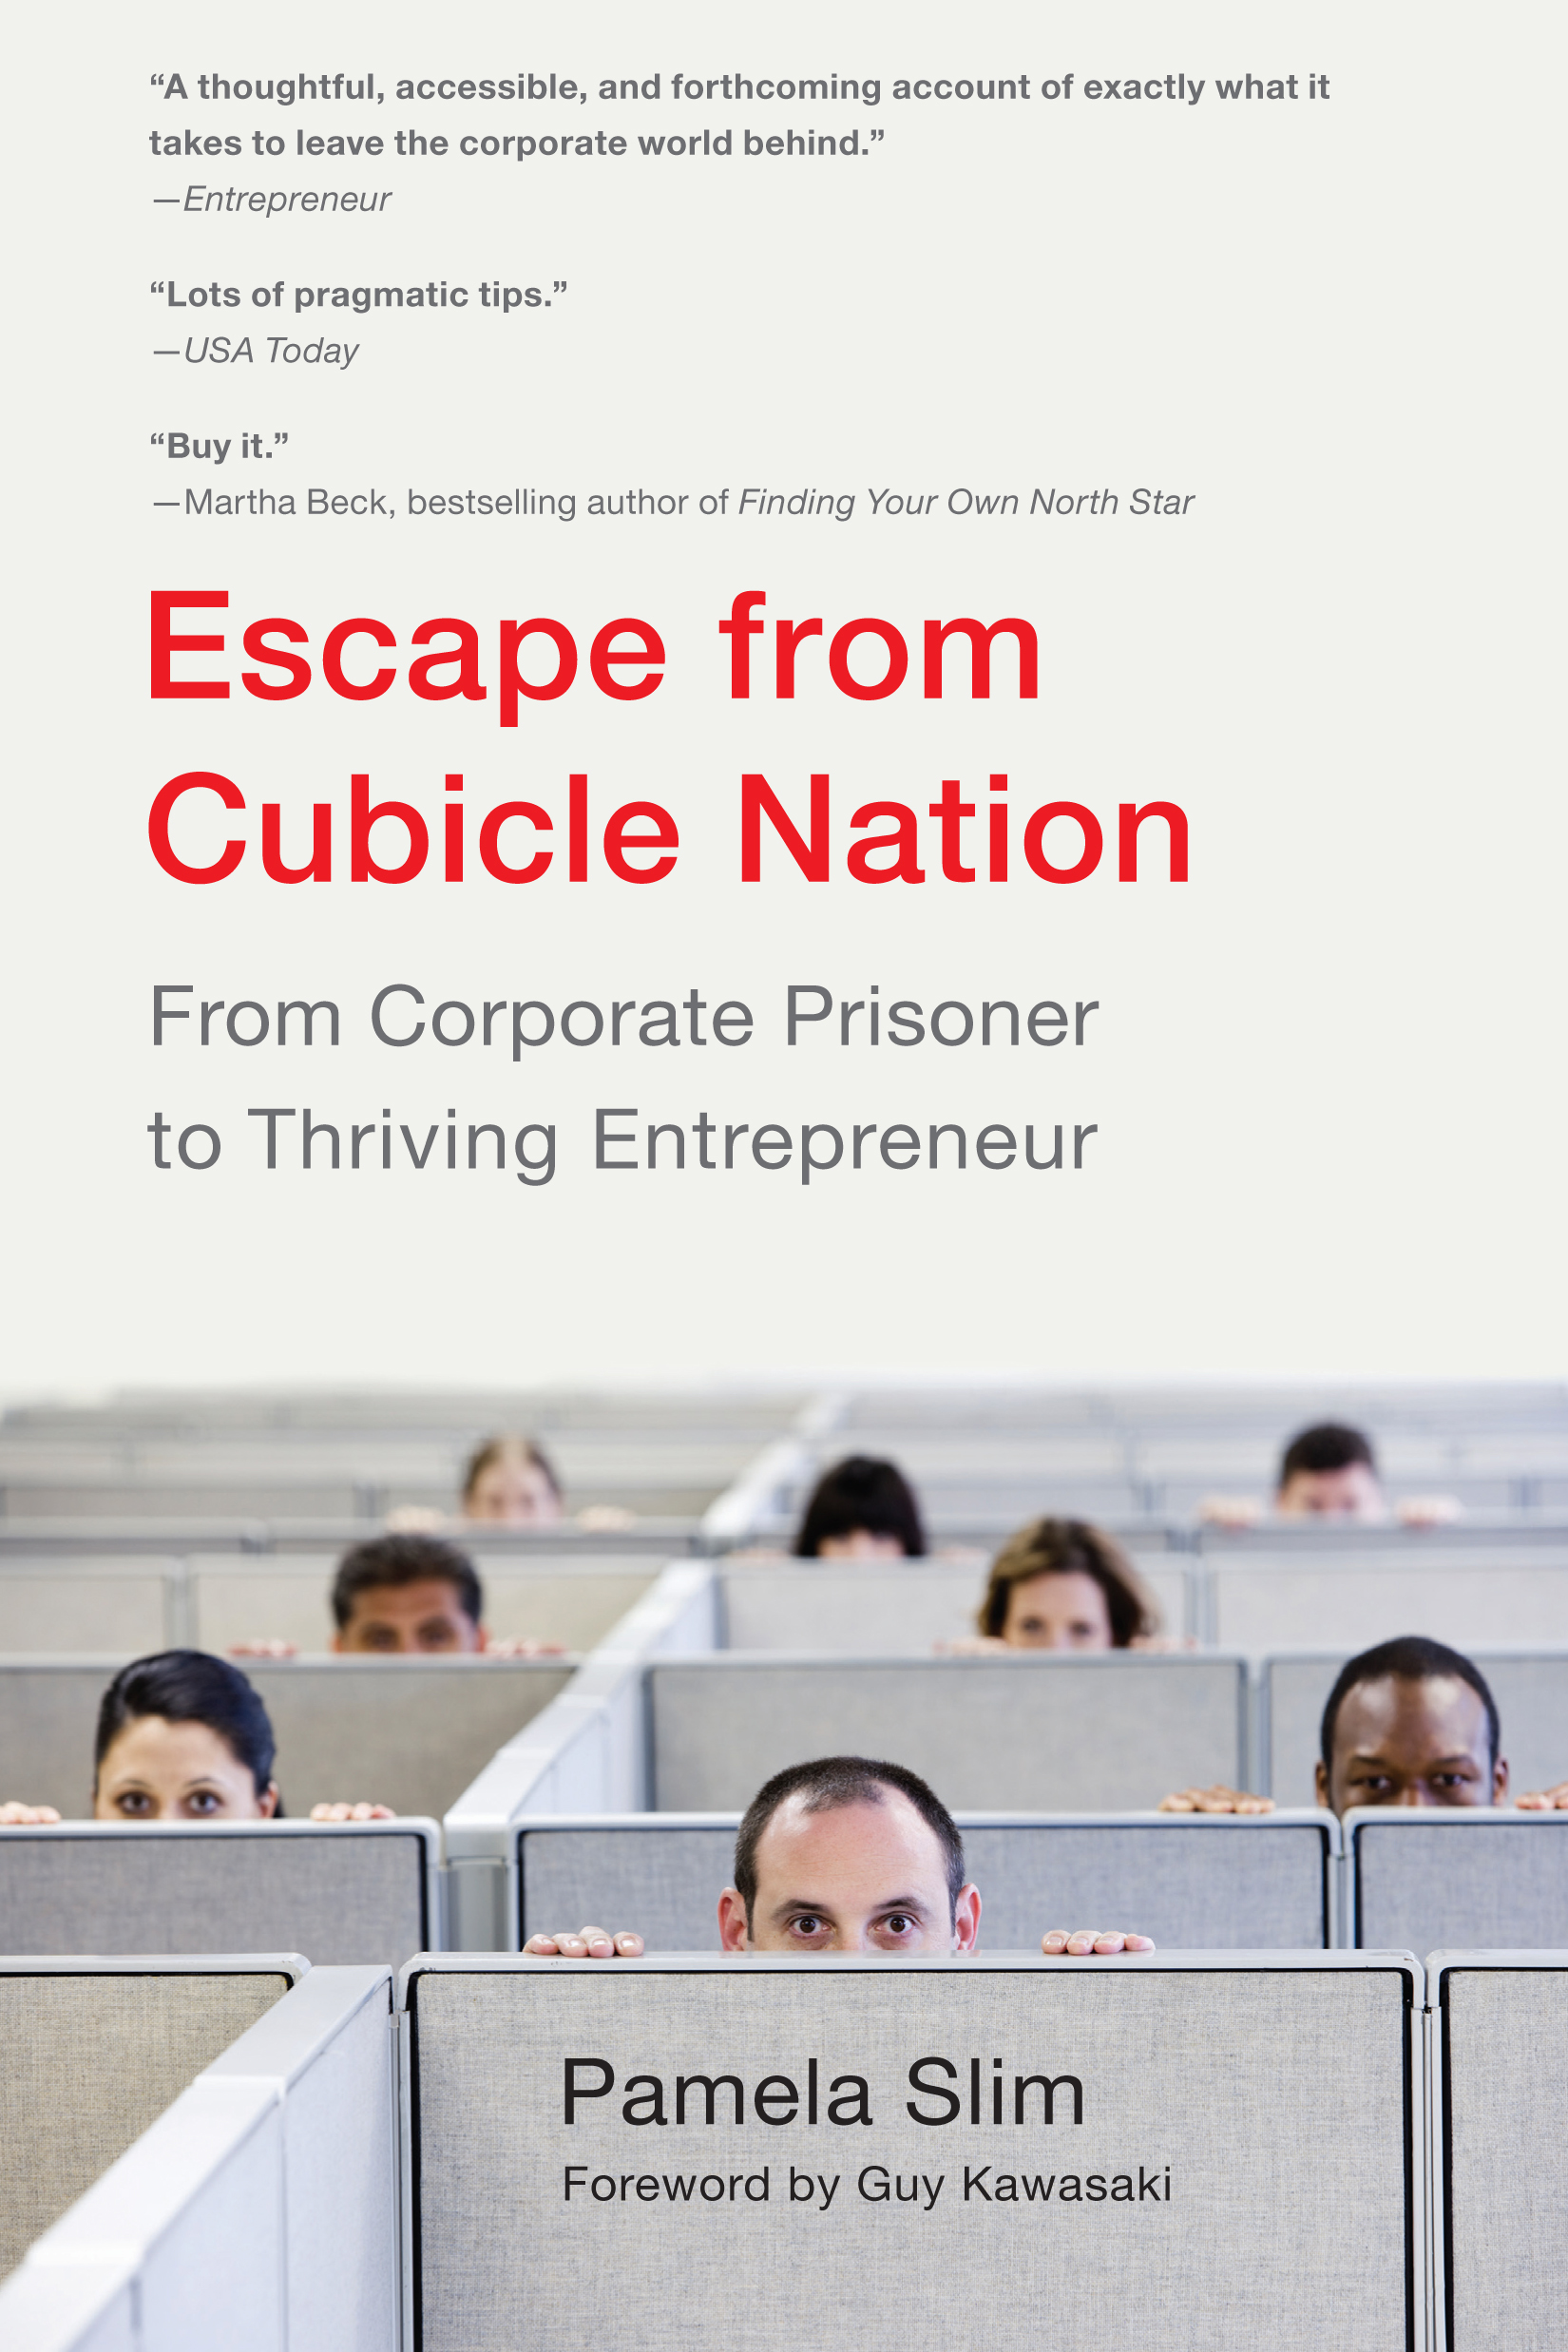 Download Ebook Escape From Cubicle Nation by Pamela Slim Pdf